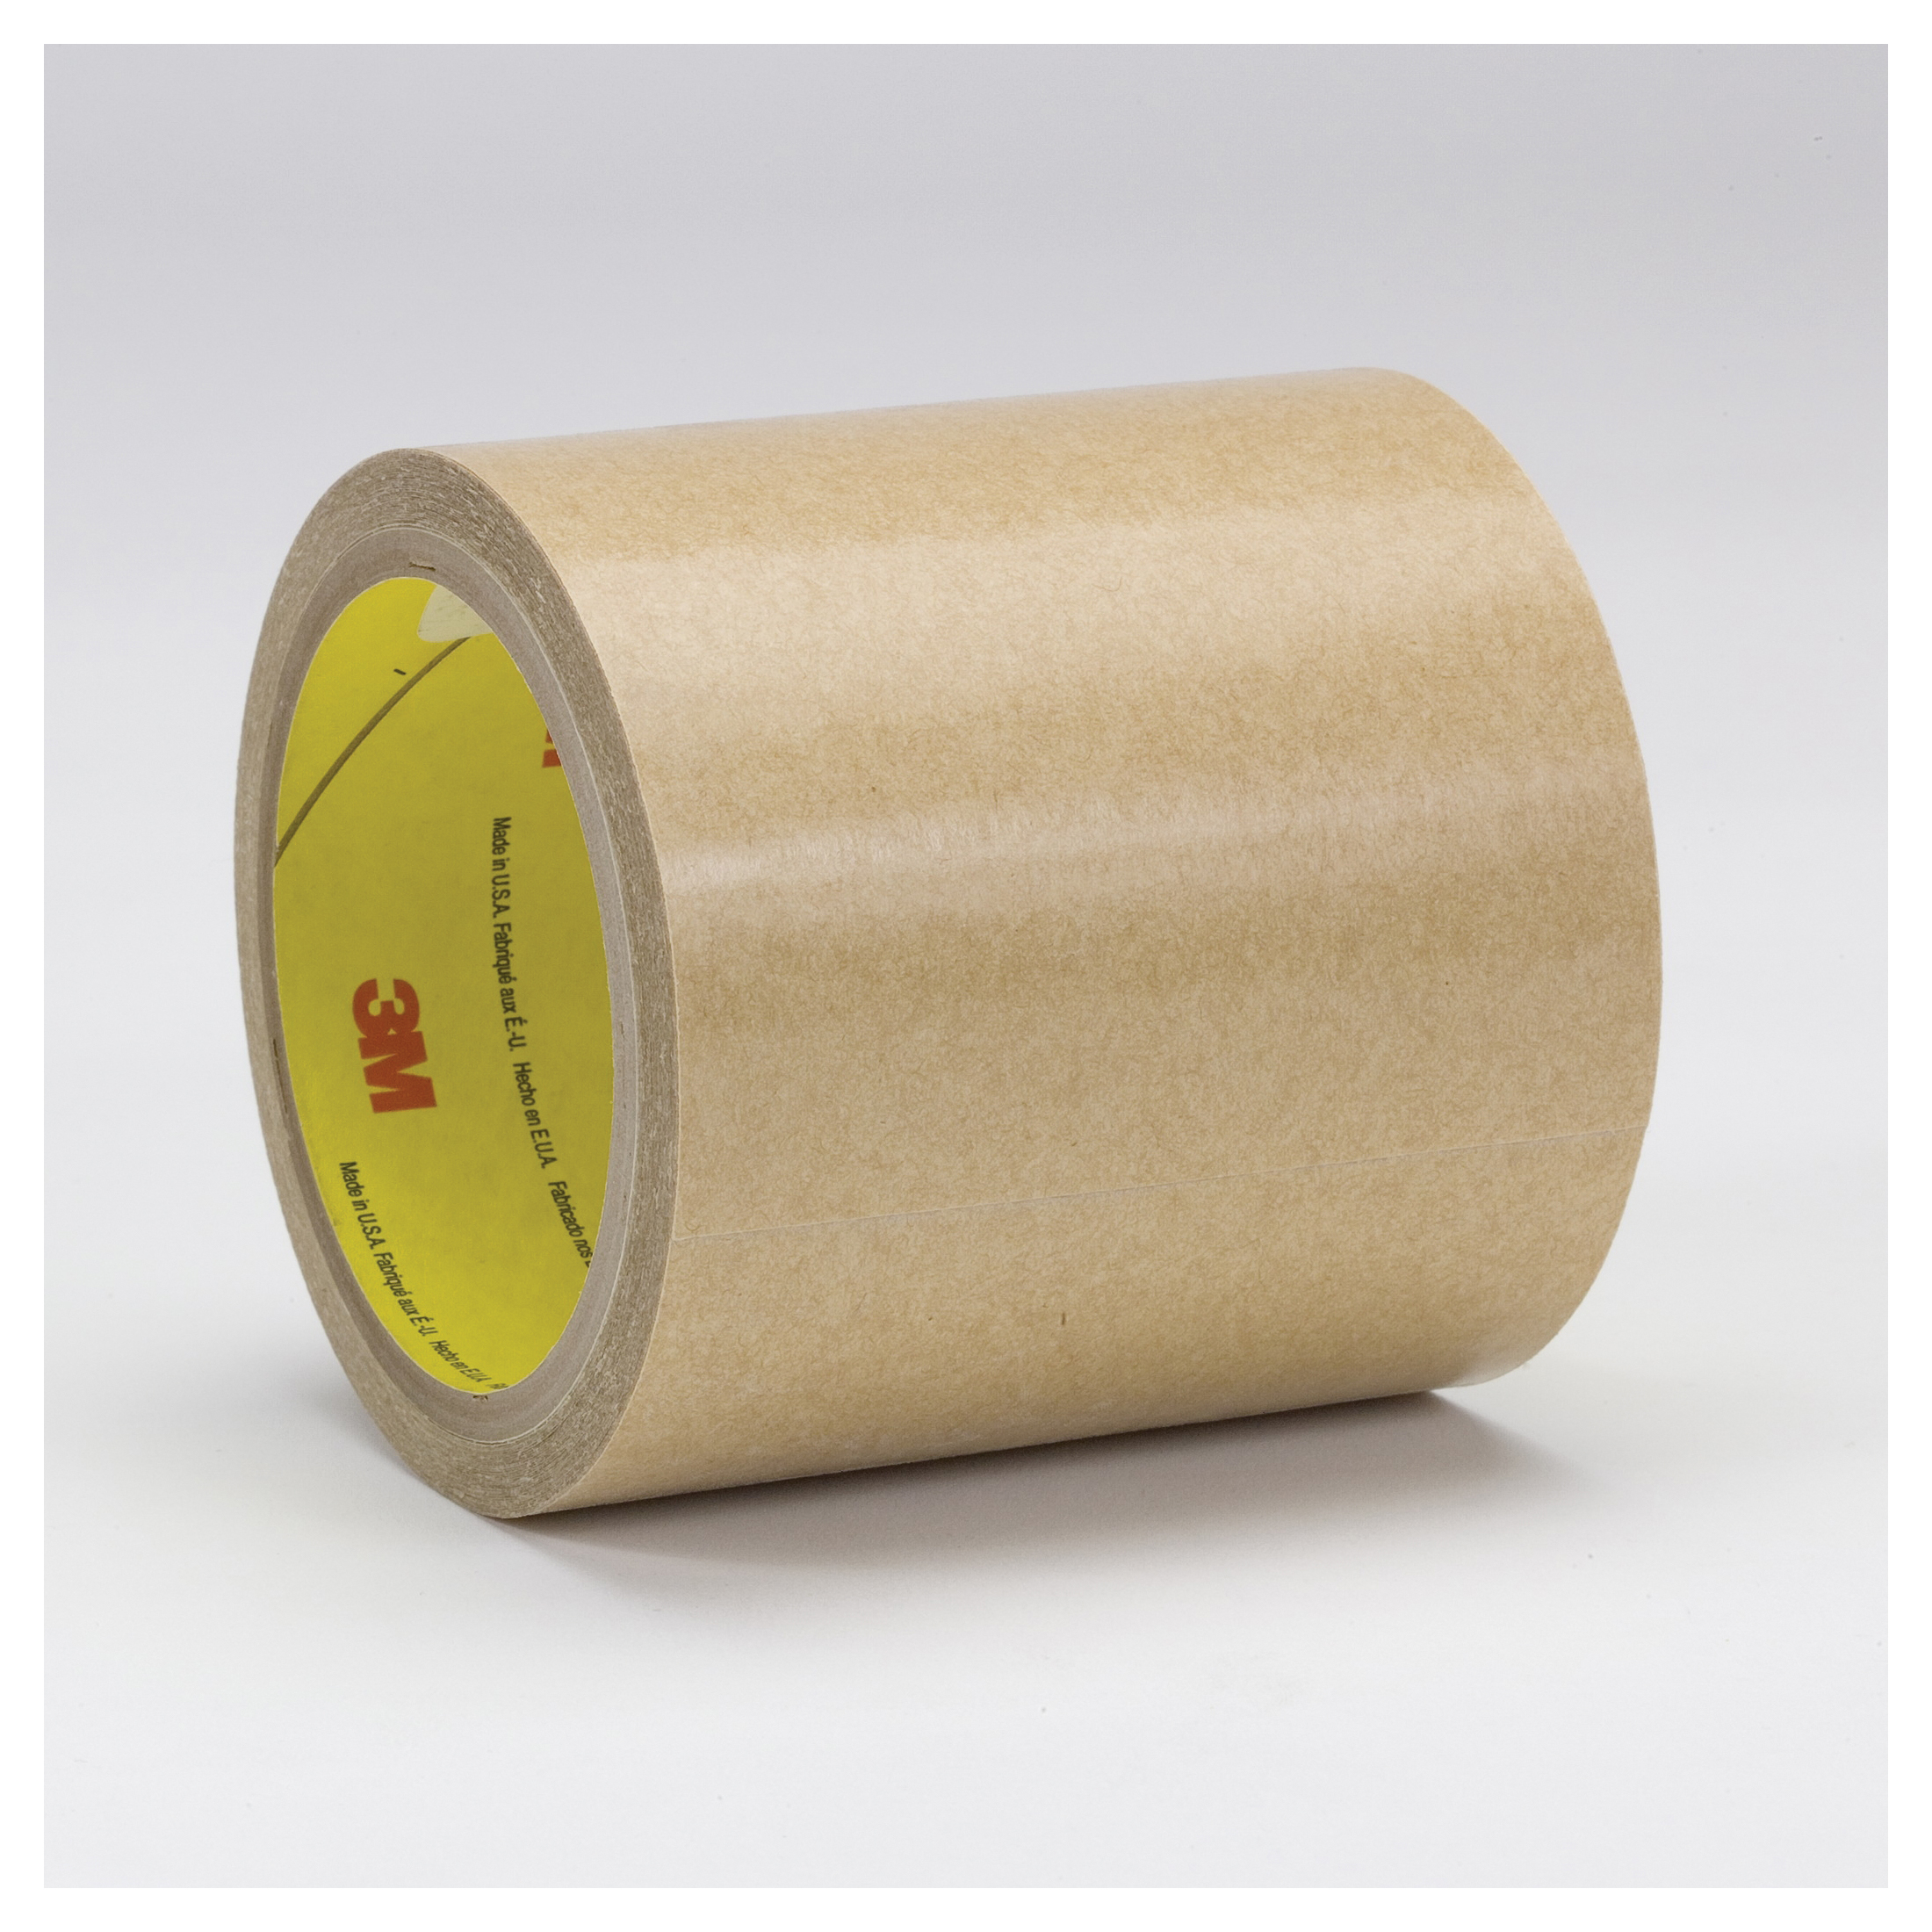 3M™ 021200-68800 General Purpose High Tack Adhesive Transfer Tape, 60 yd L x 12 in W, 8.5 mil THK, 5 mil 300 Acrylic Adhesive, Clear